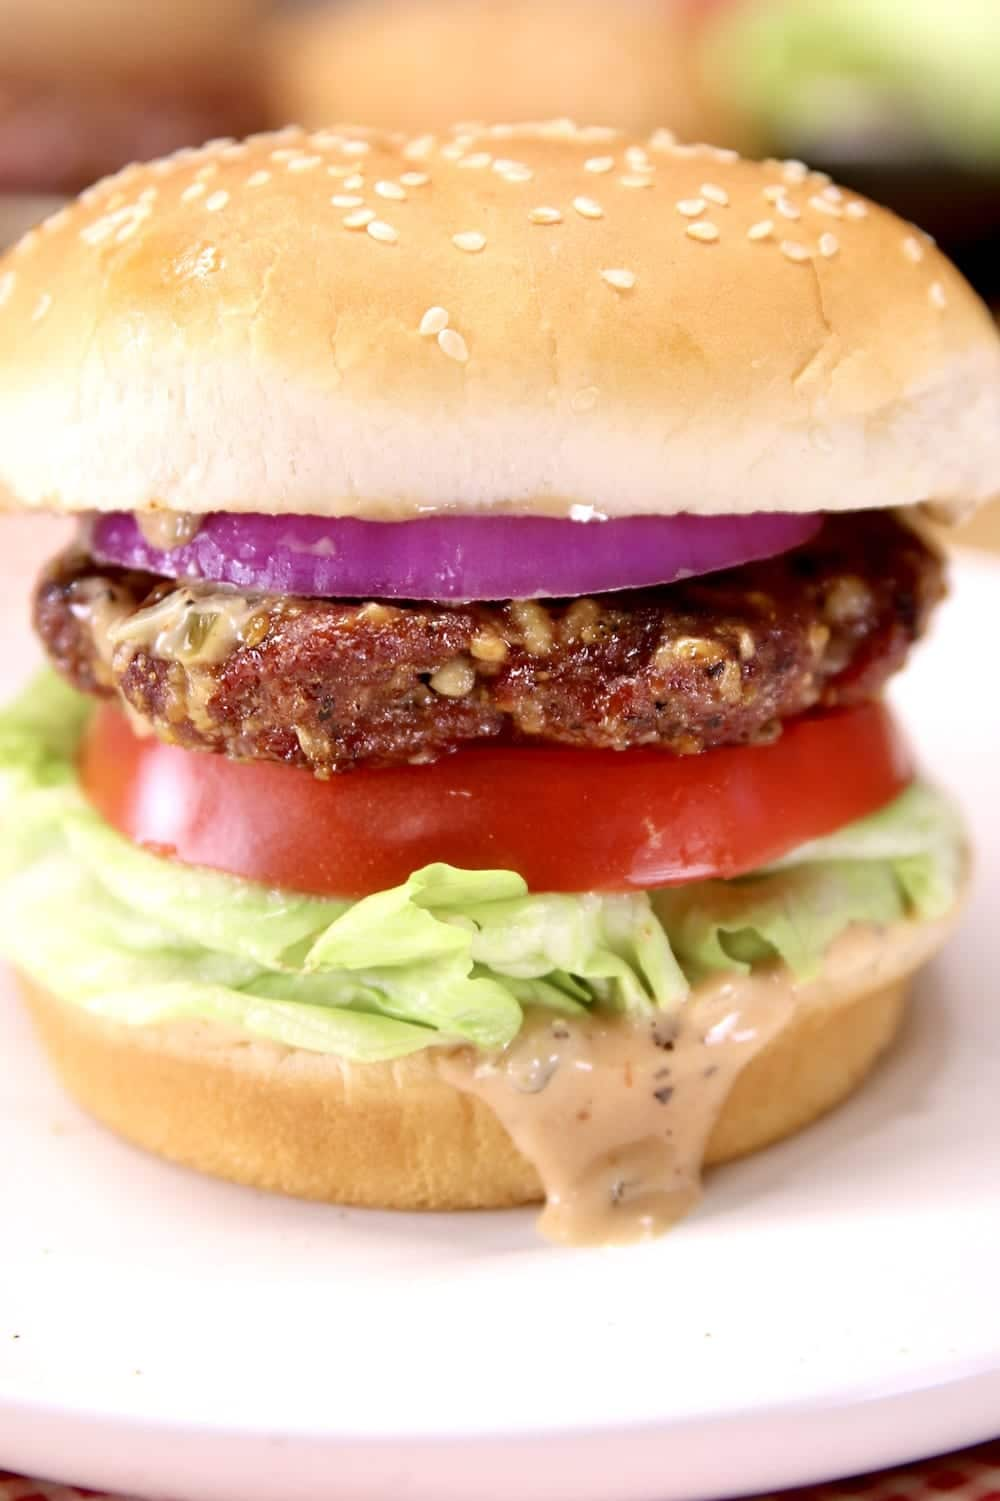 mozzarella burger with red onion, sliced tomato, lettuce and burger sauce